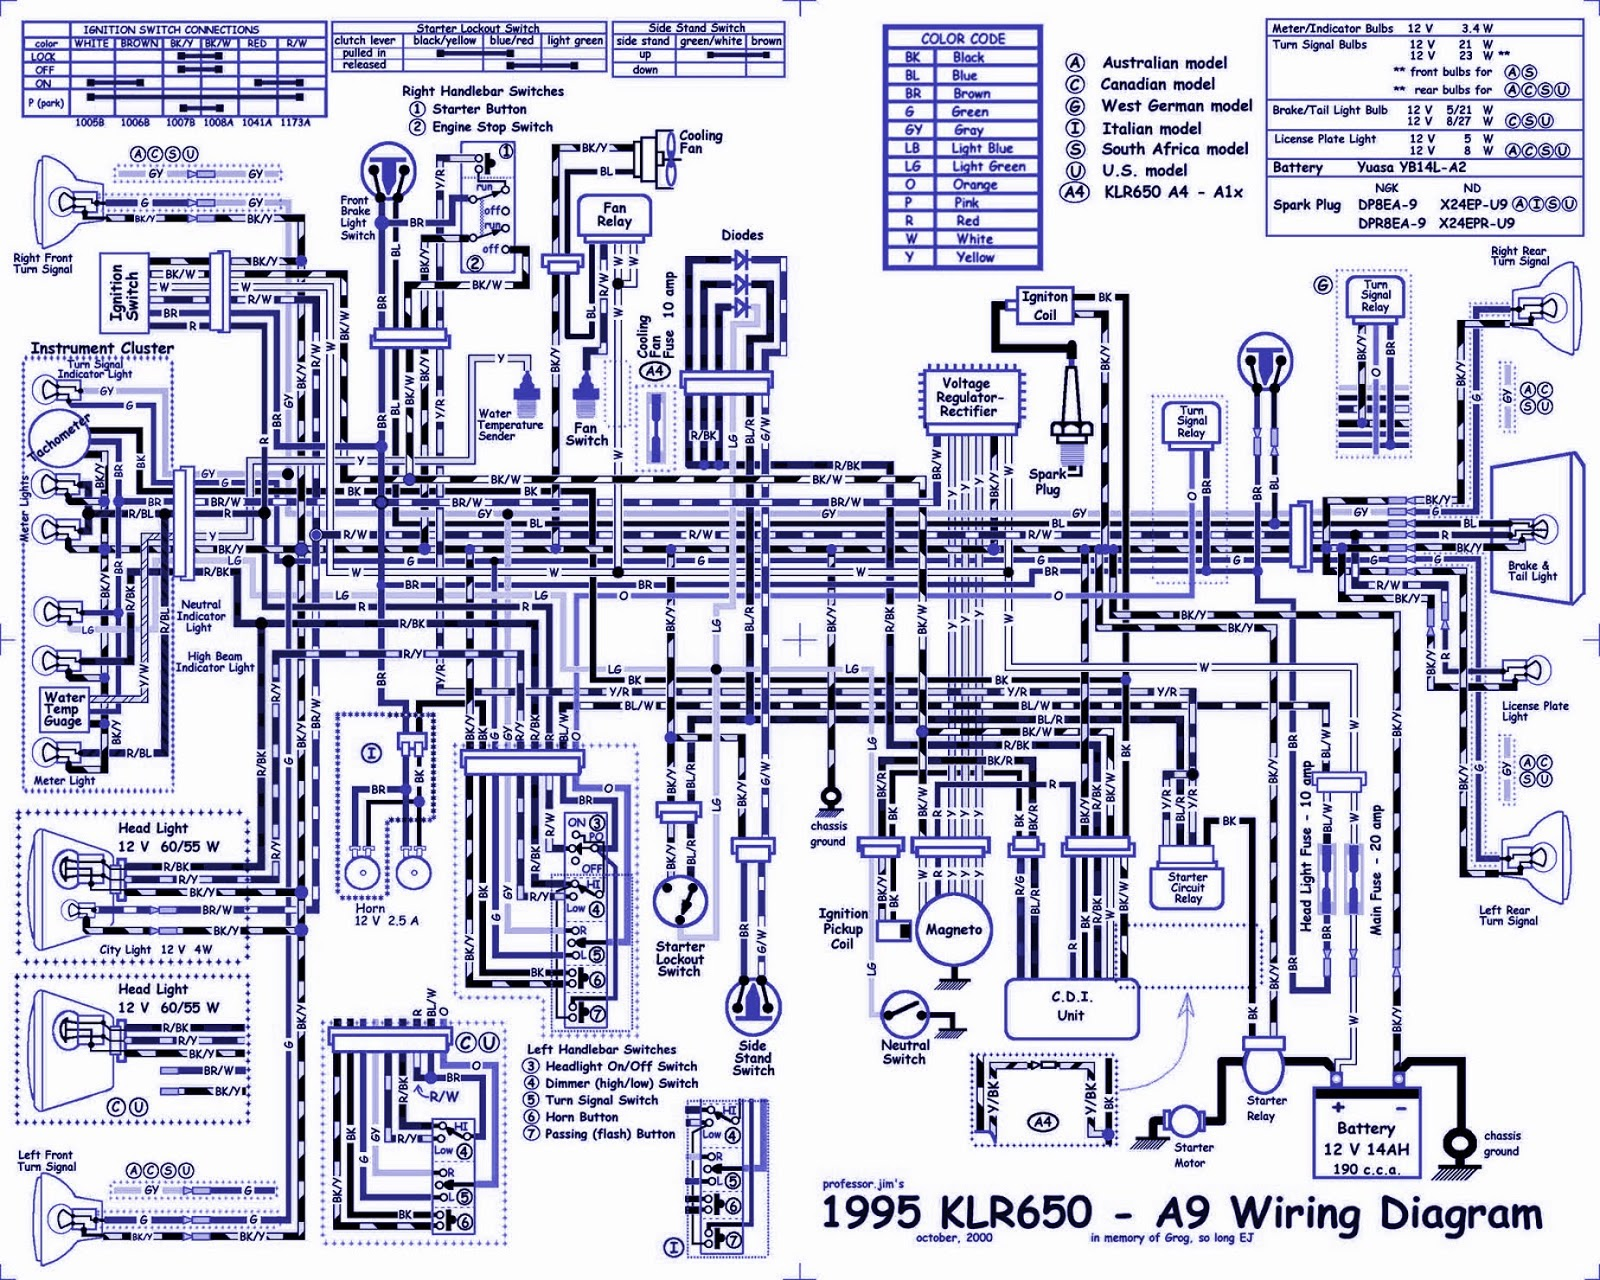 1995 Chevy Impala Ss Engine Diagram Electrical Schematics Camaro Abs Wiring 95 Illustration Of U2022 Jeep Wrangler